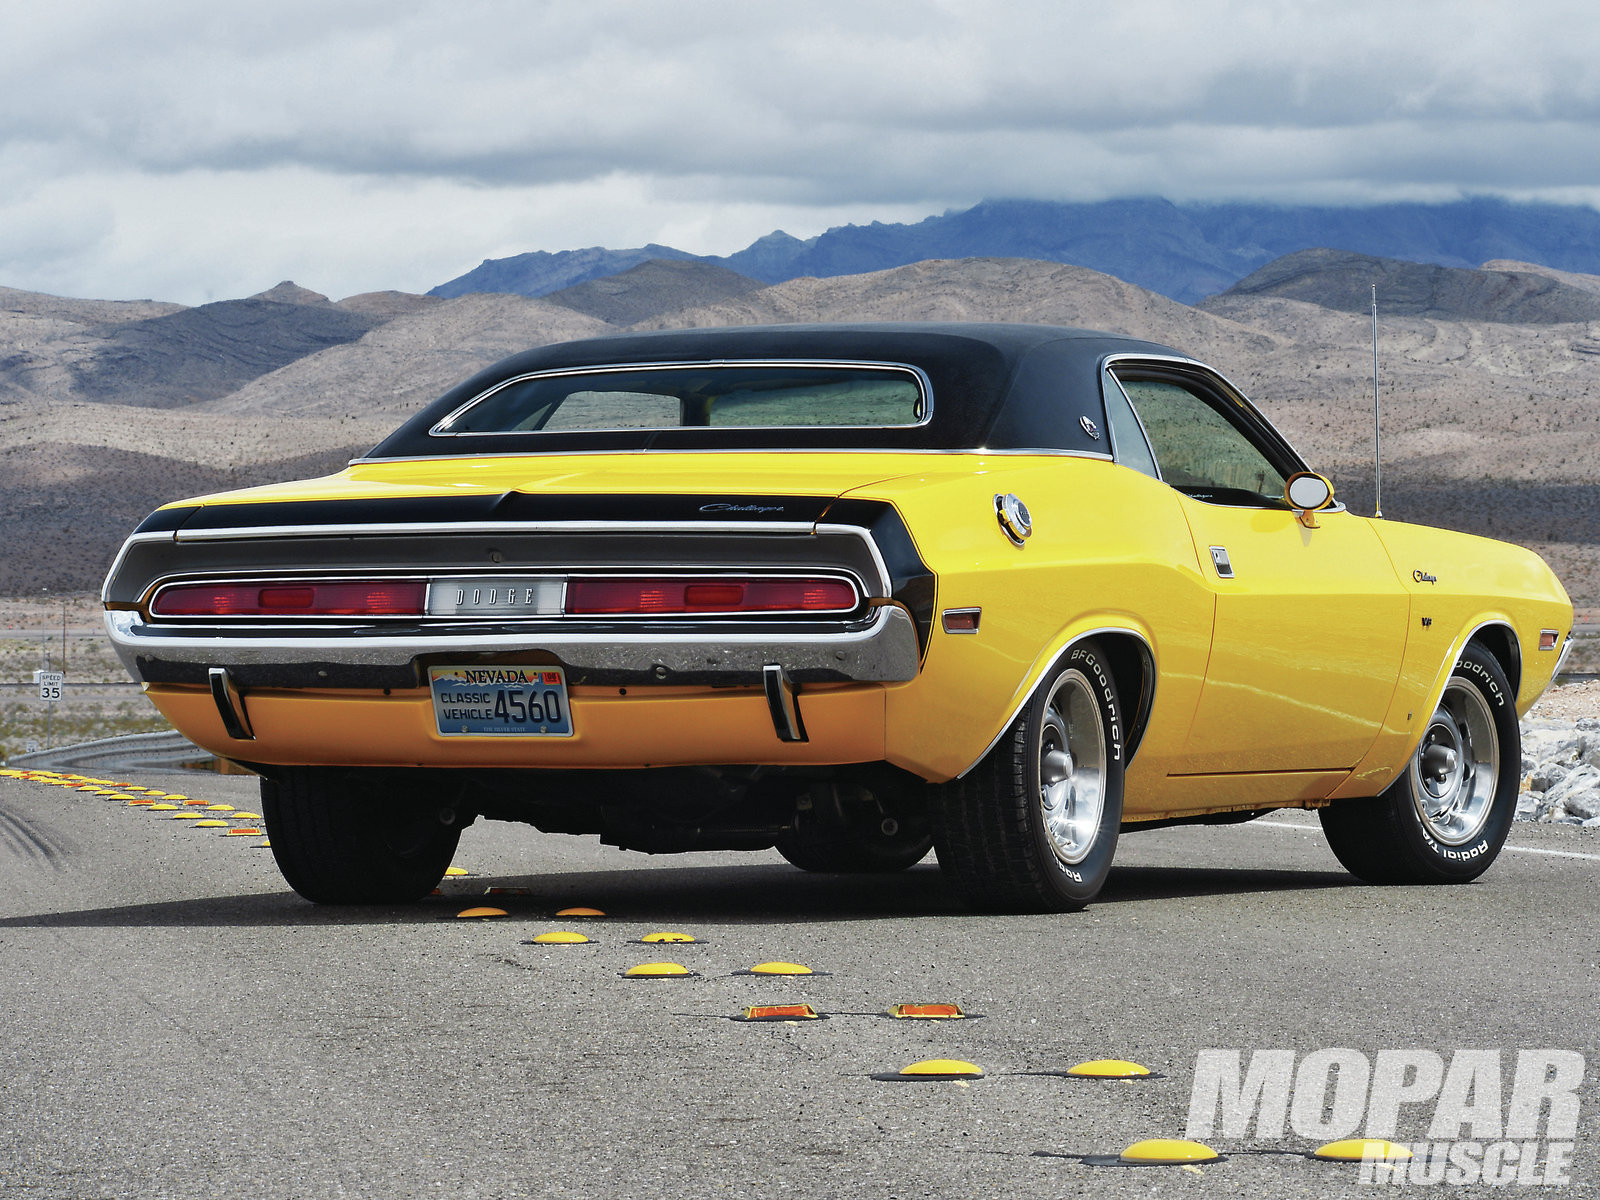 Mopar muscle car wallpaper wallpapersafari - Pictures of muscle cars ...